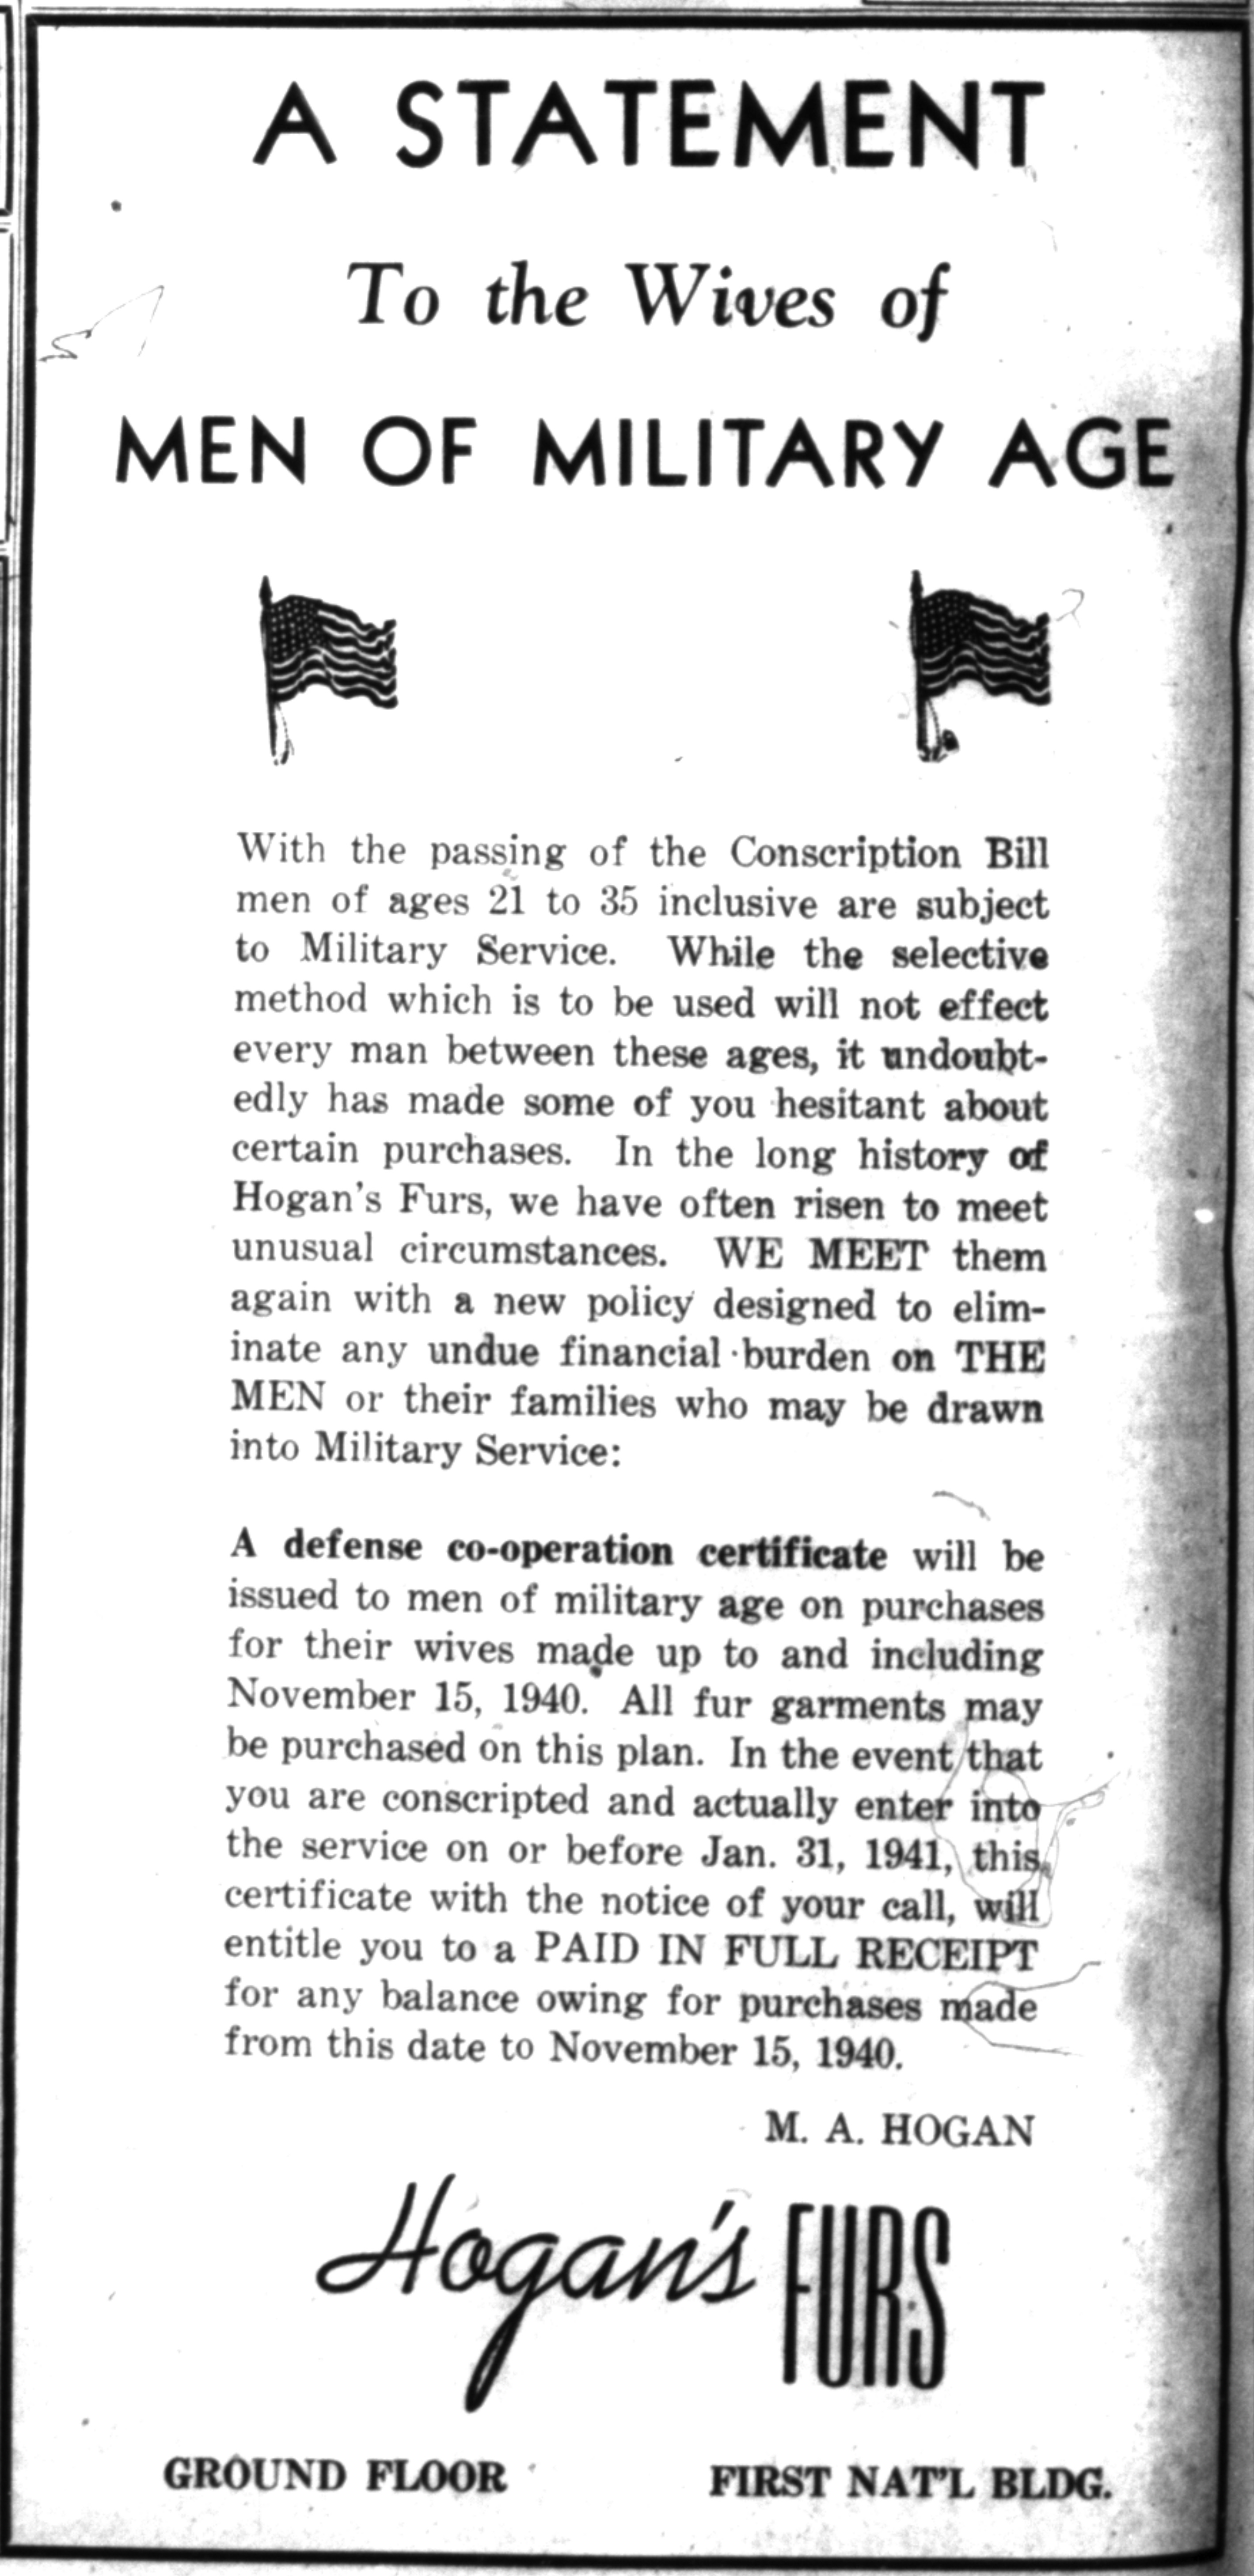 A Statement To The Wives of Men of Military Age image